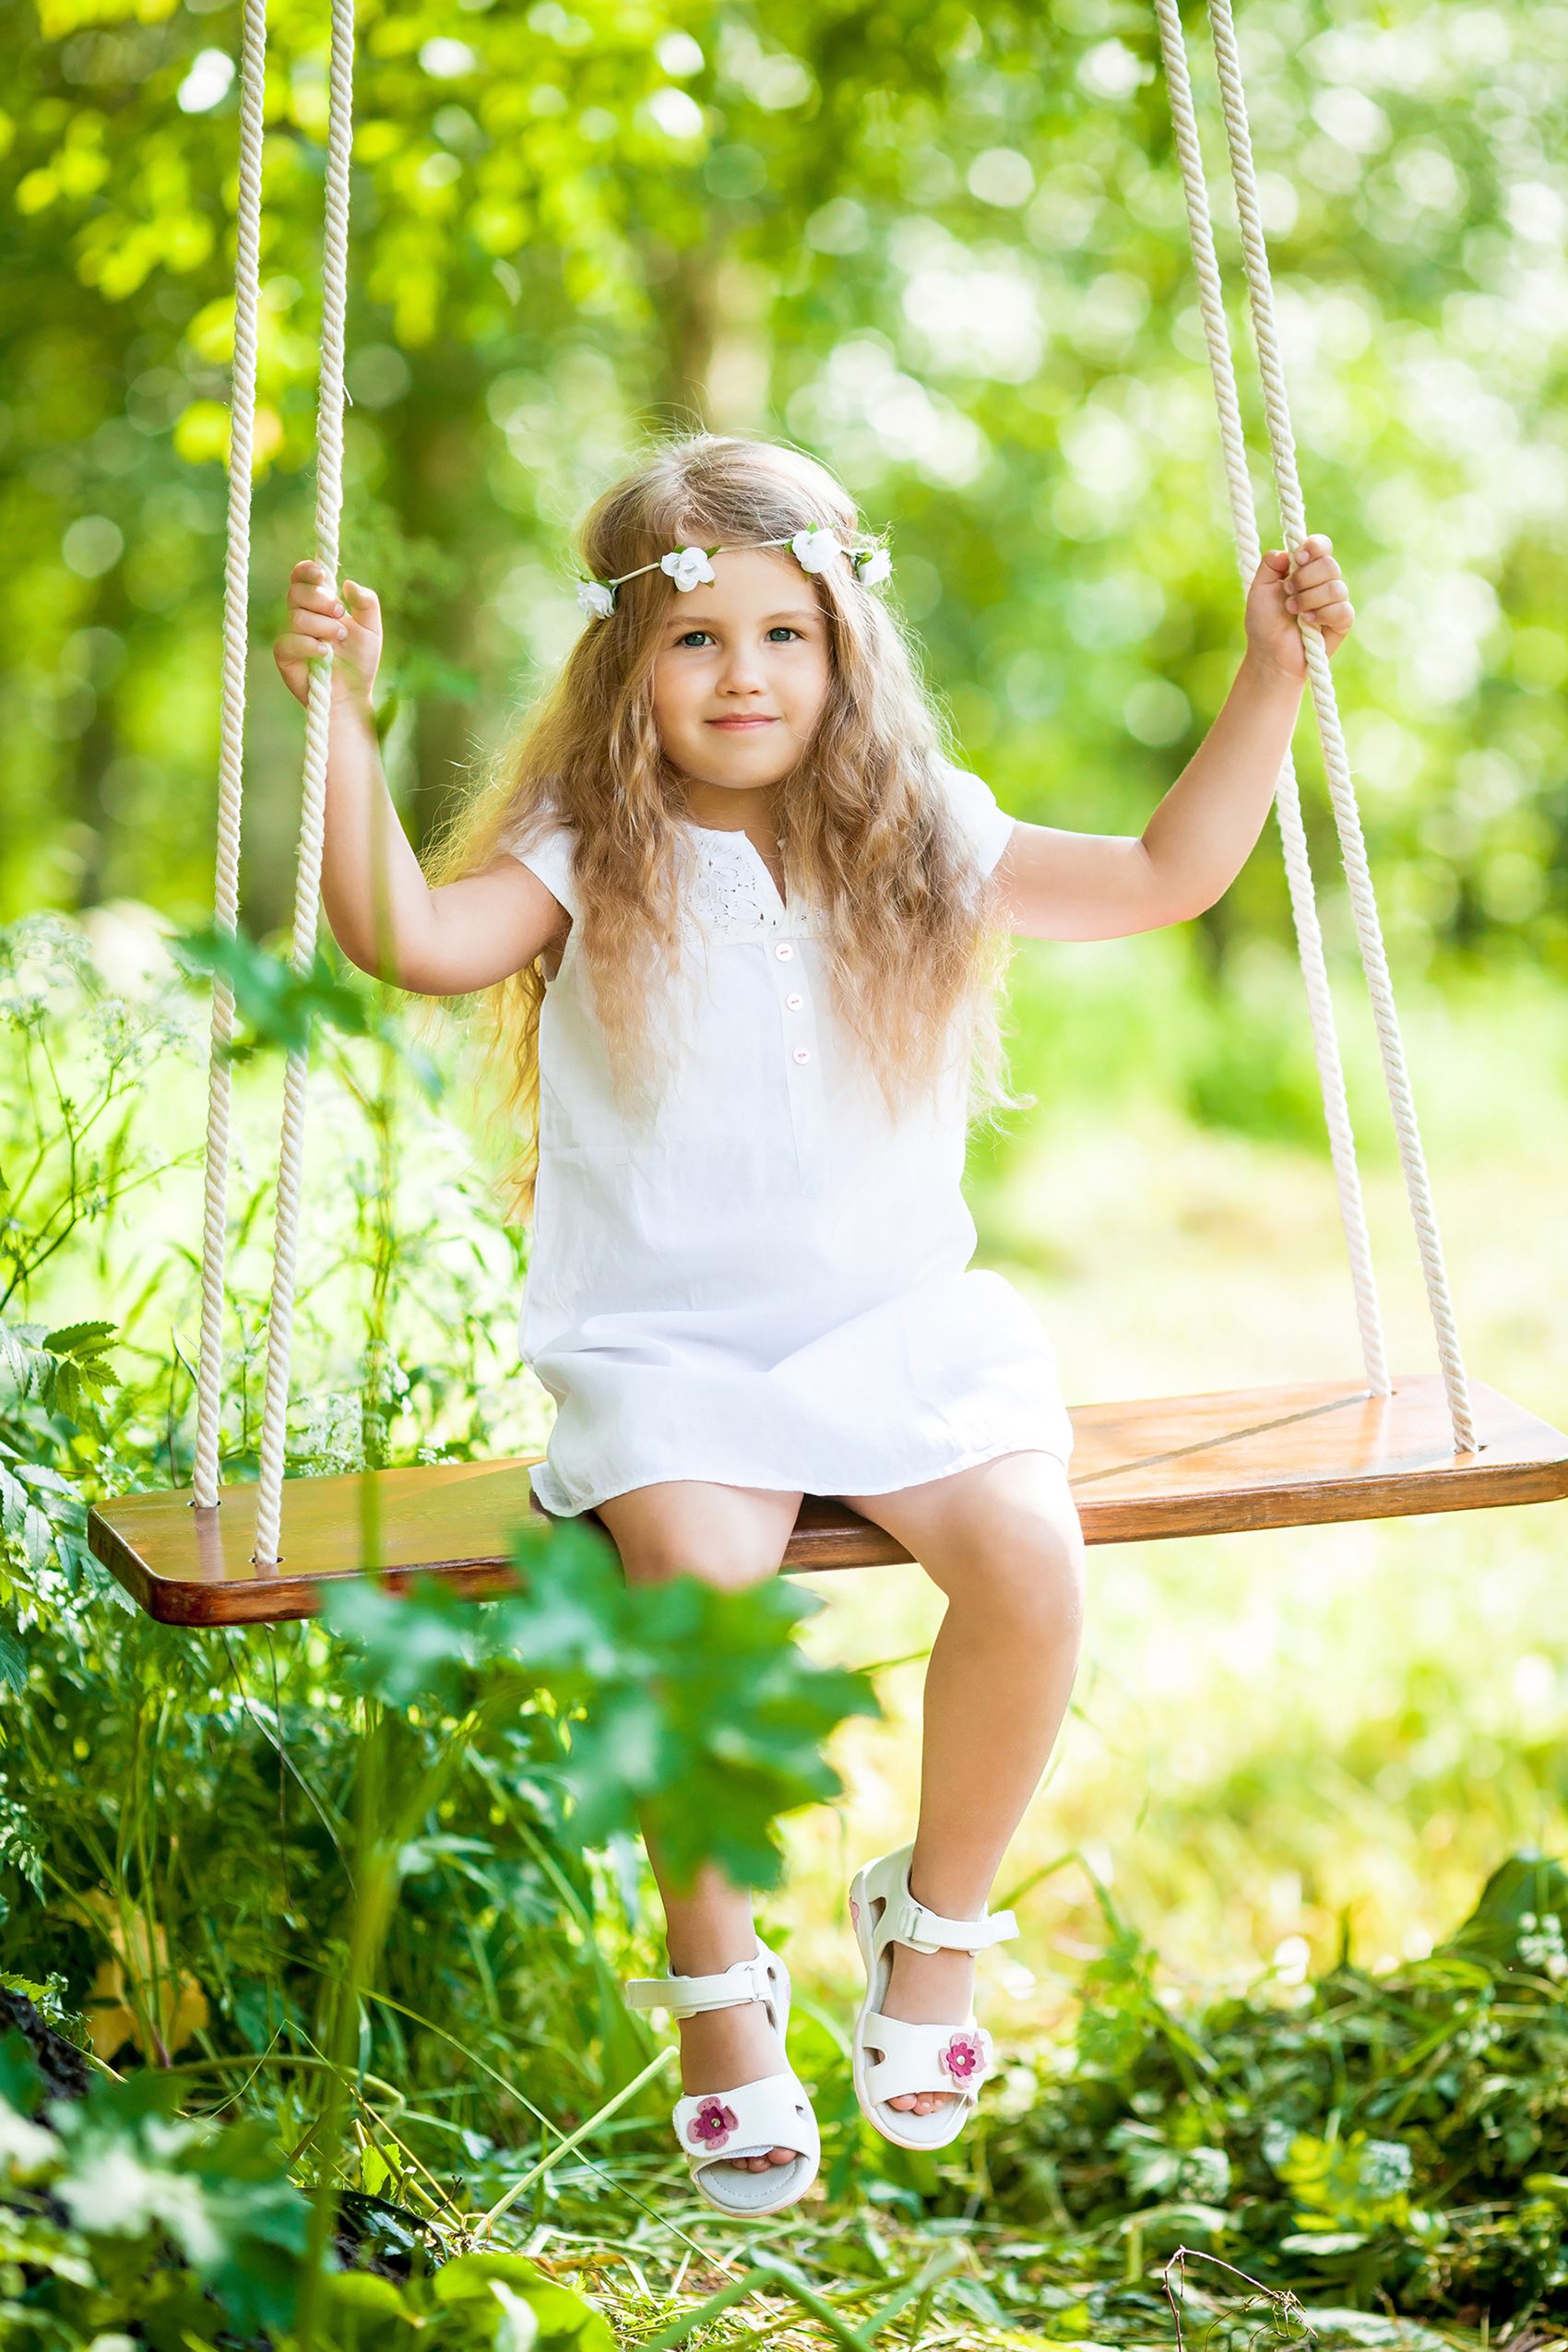 Sit on the swing on the girl with long hair 52810